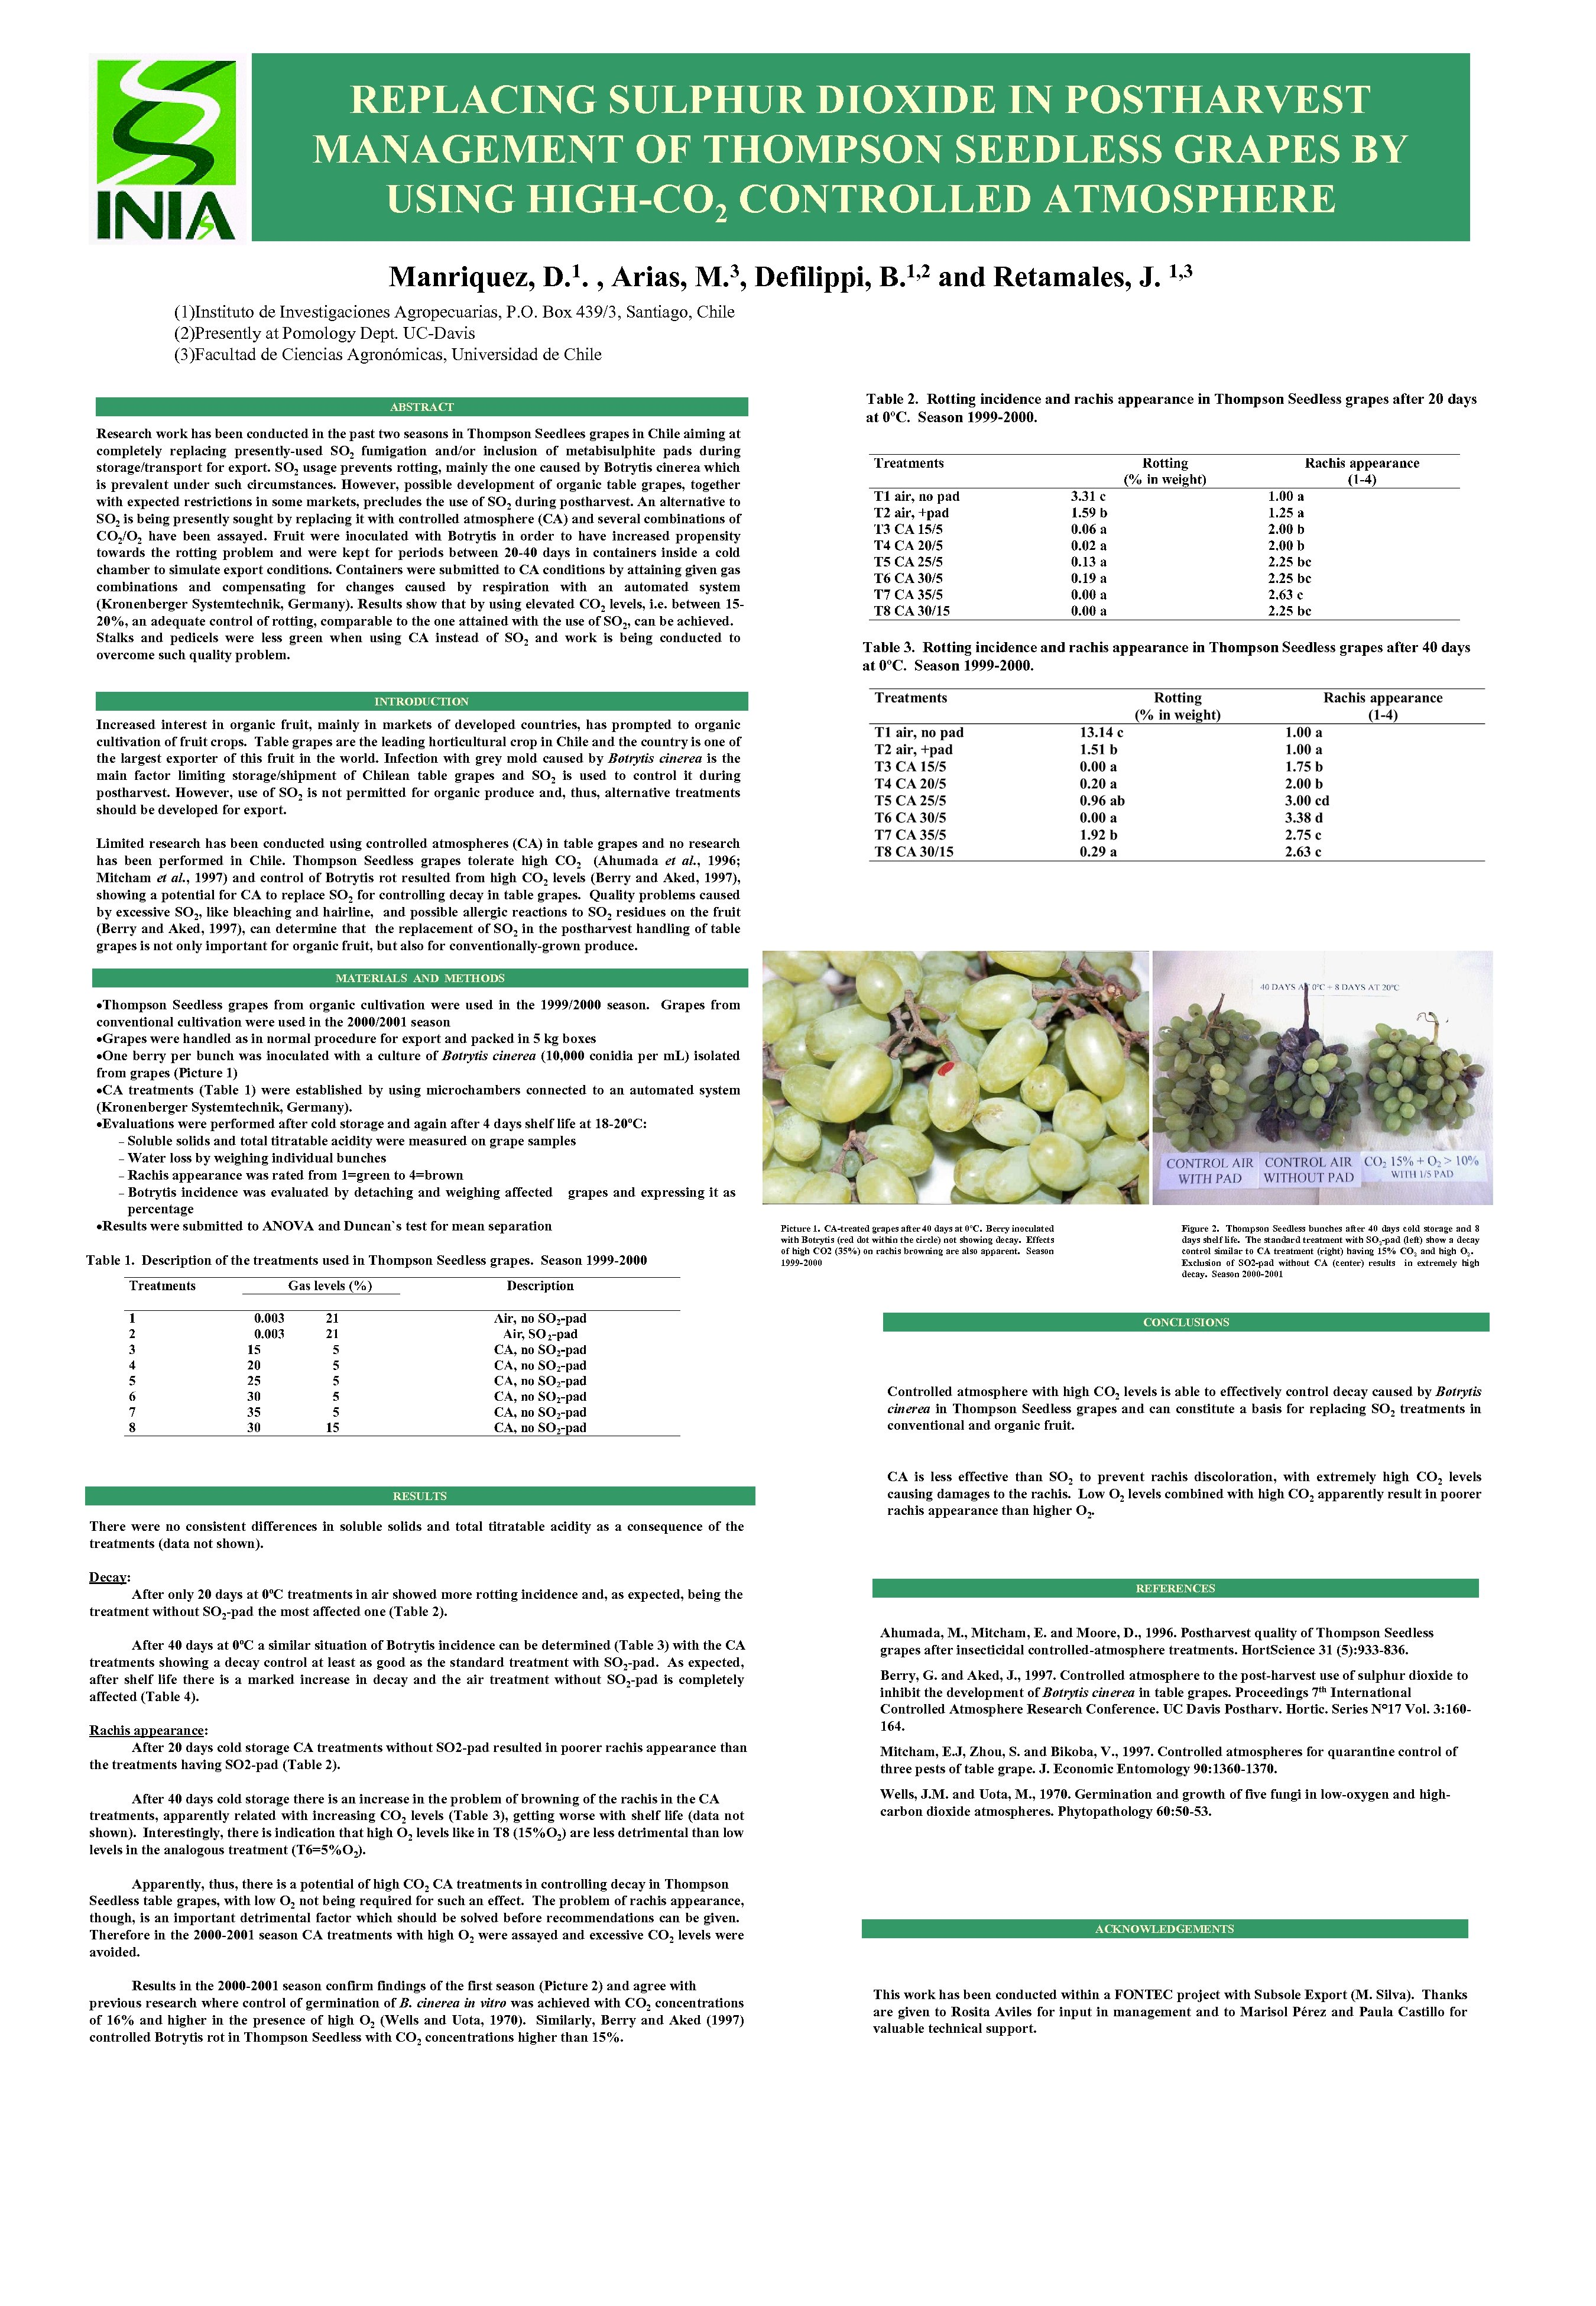 REPLACING SULPHUR DIOXIDE IN POSTHARVEST MANAGEMENT OF THOMPSON SEEDLESS GRAPES BY USING HIGH-CO 2